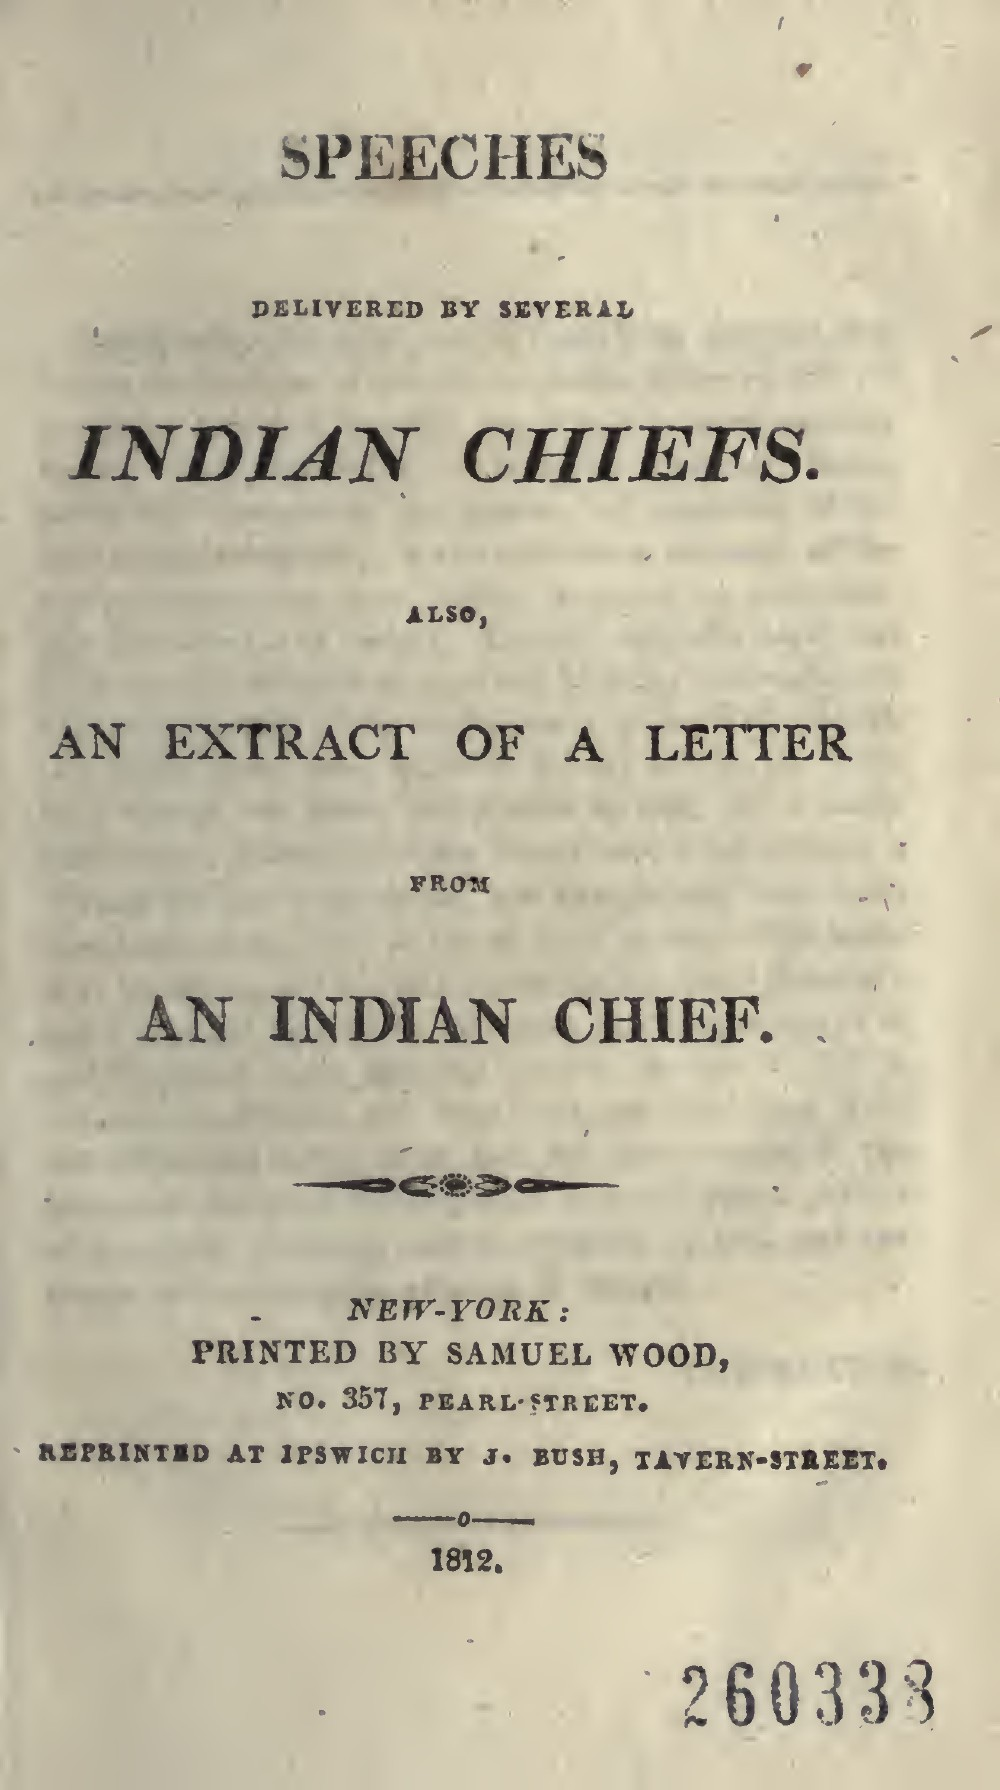 Speeches delivered by Chiefs -1710-1805